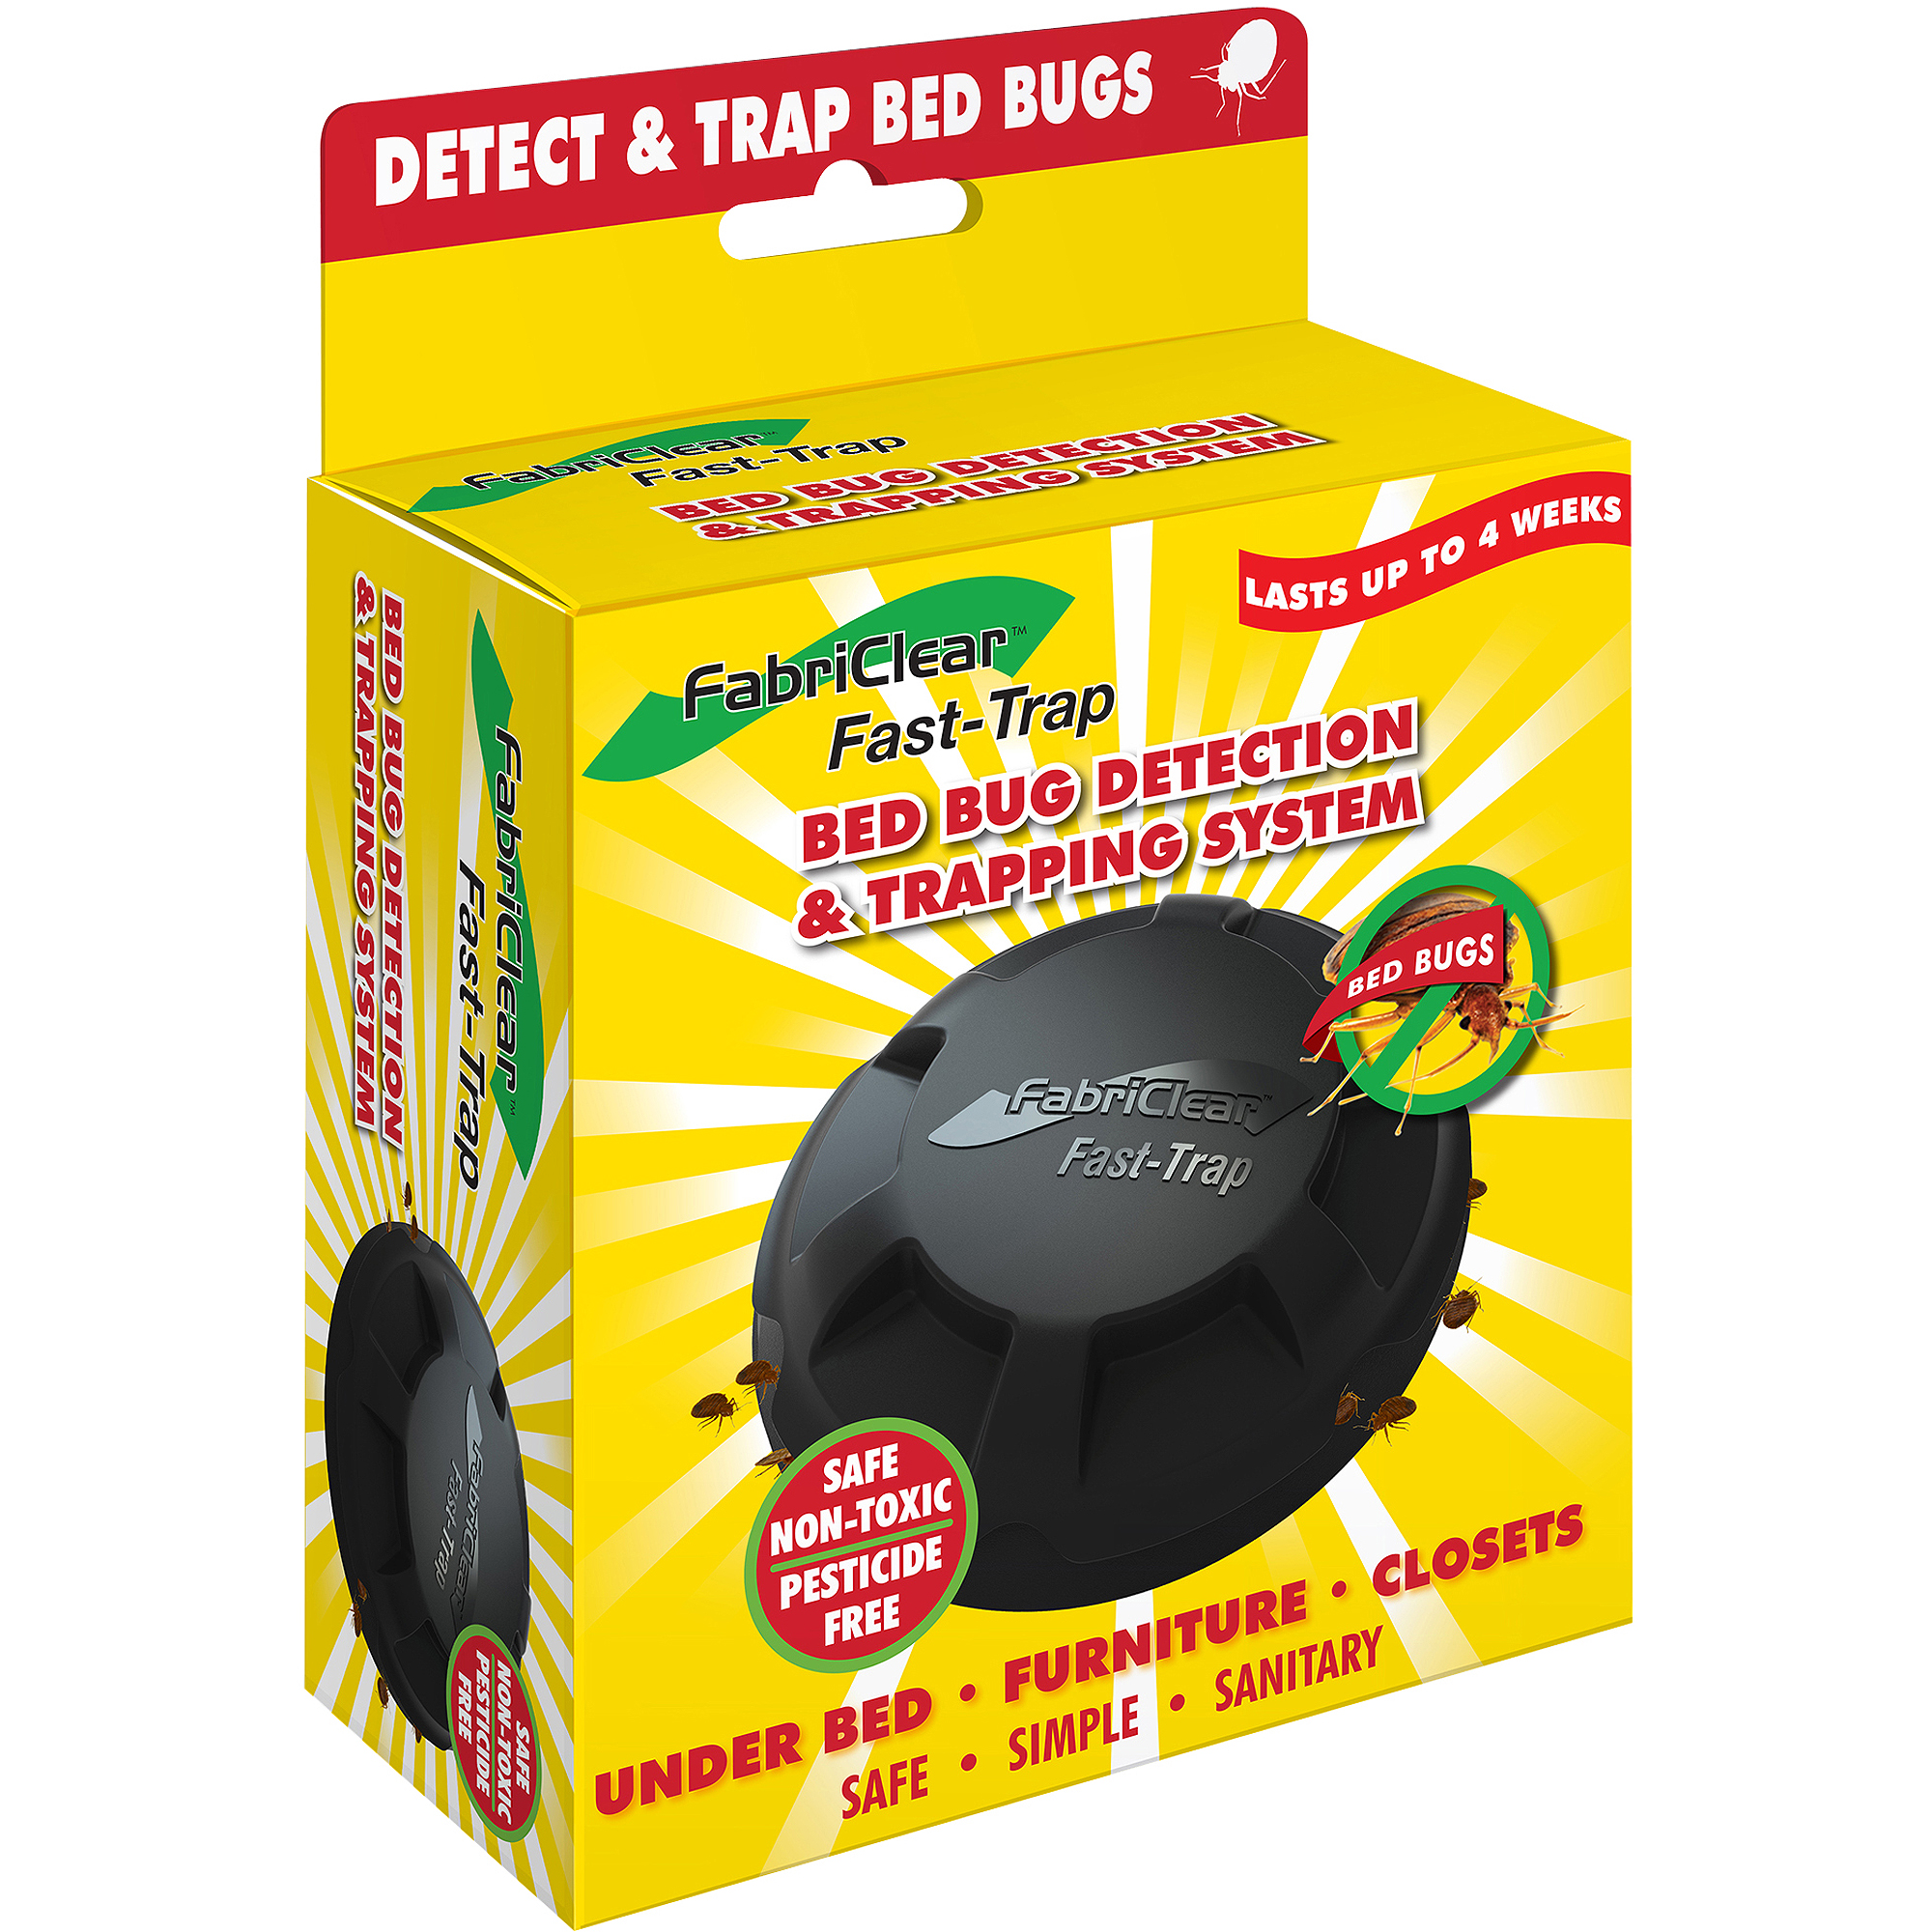 FabriClear Fast-Trap Bed Bug Detection & Trapping System